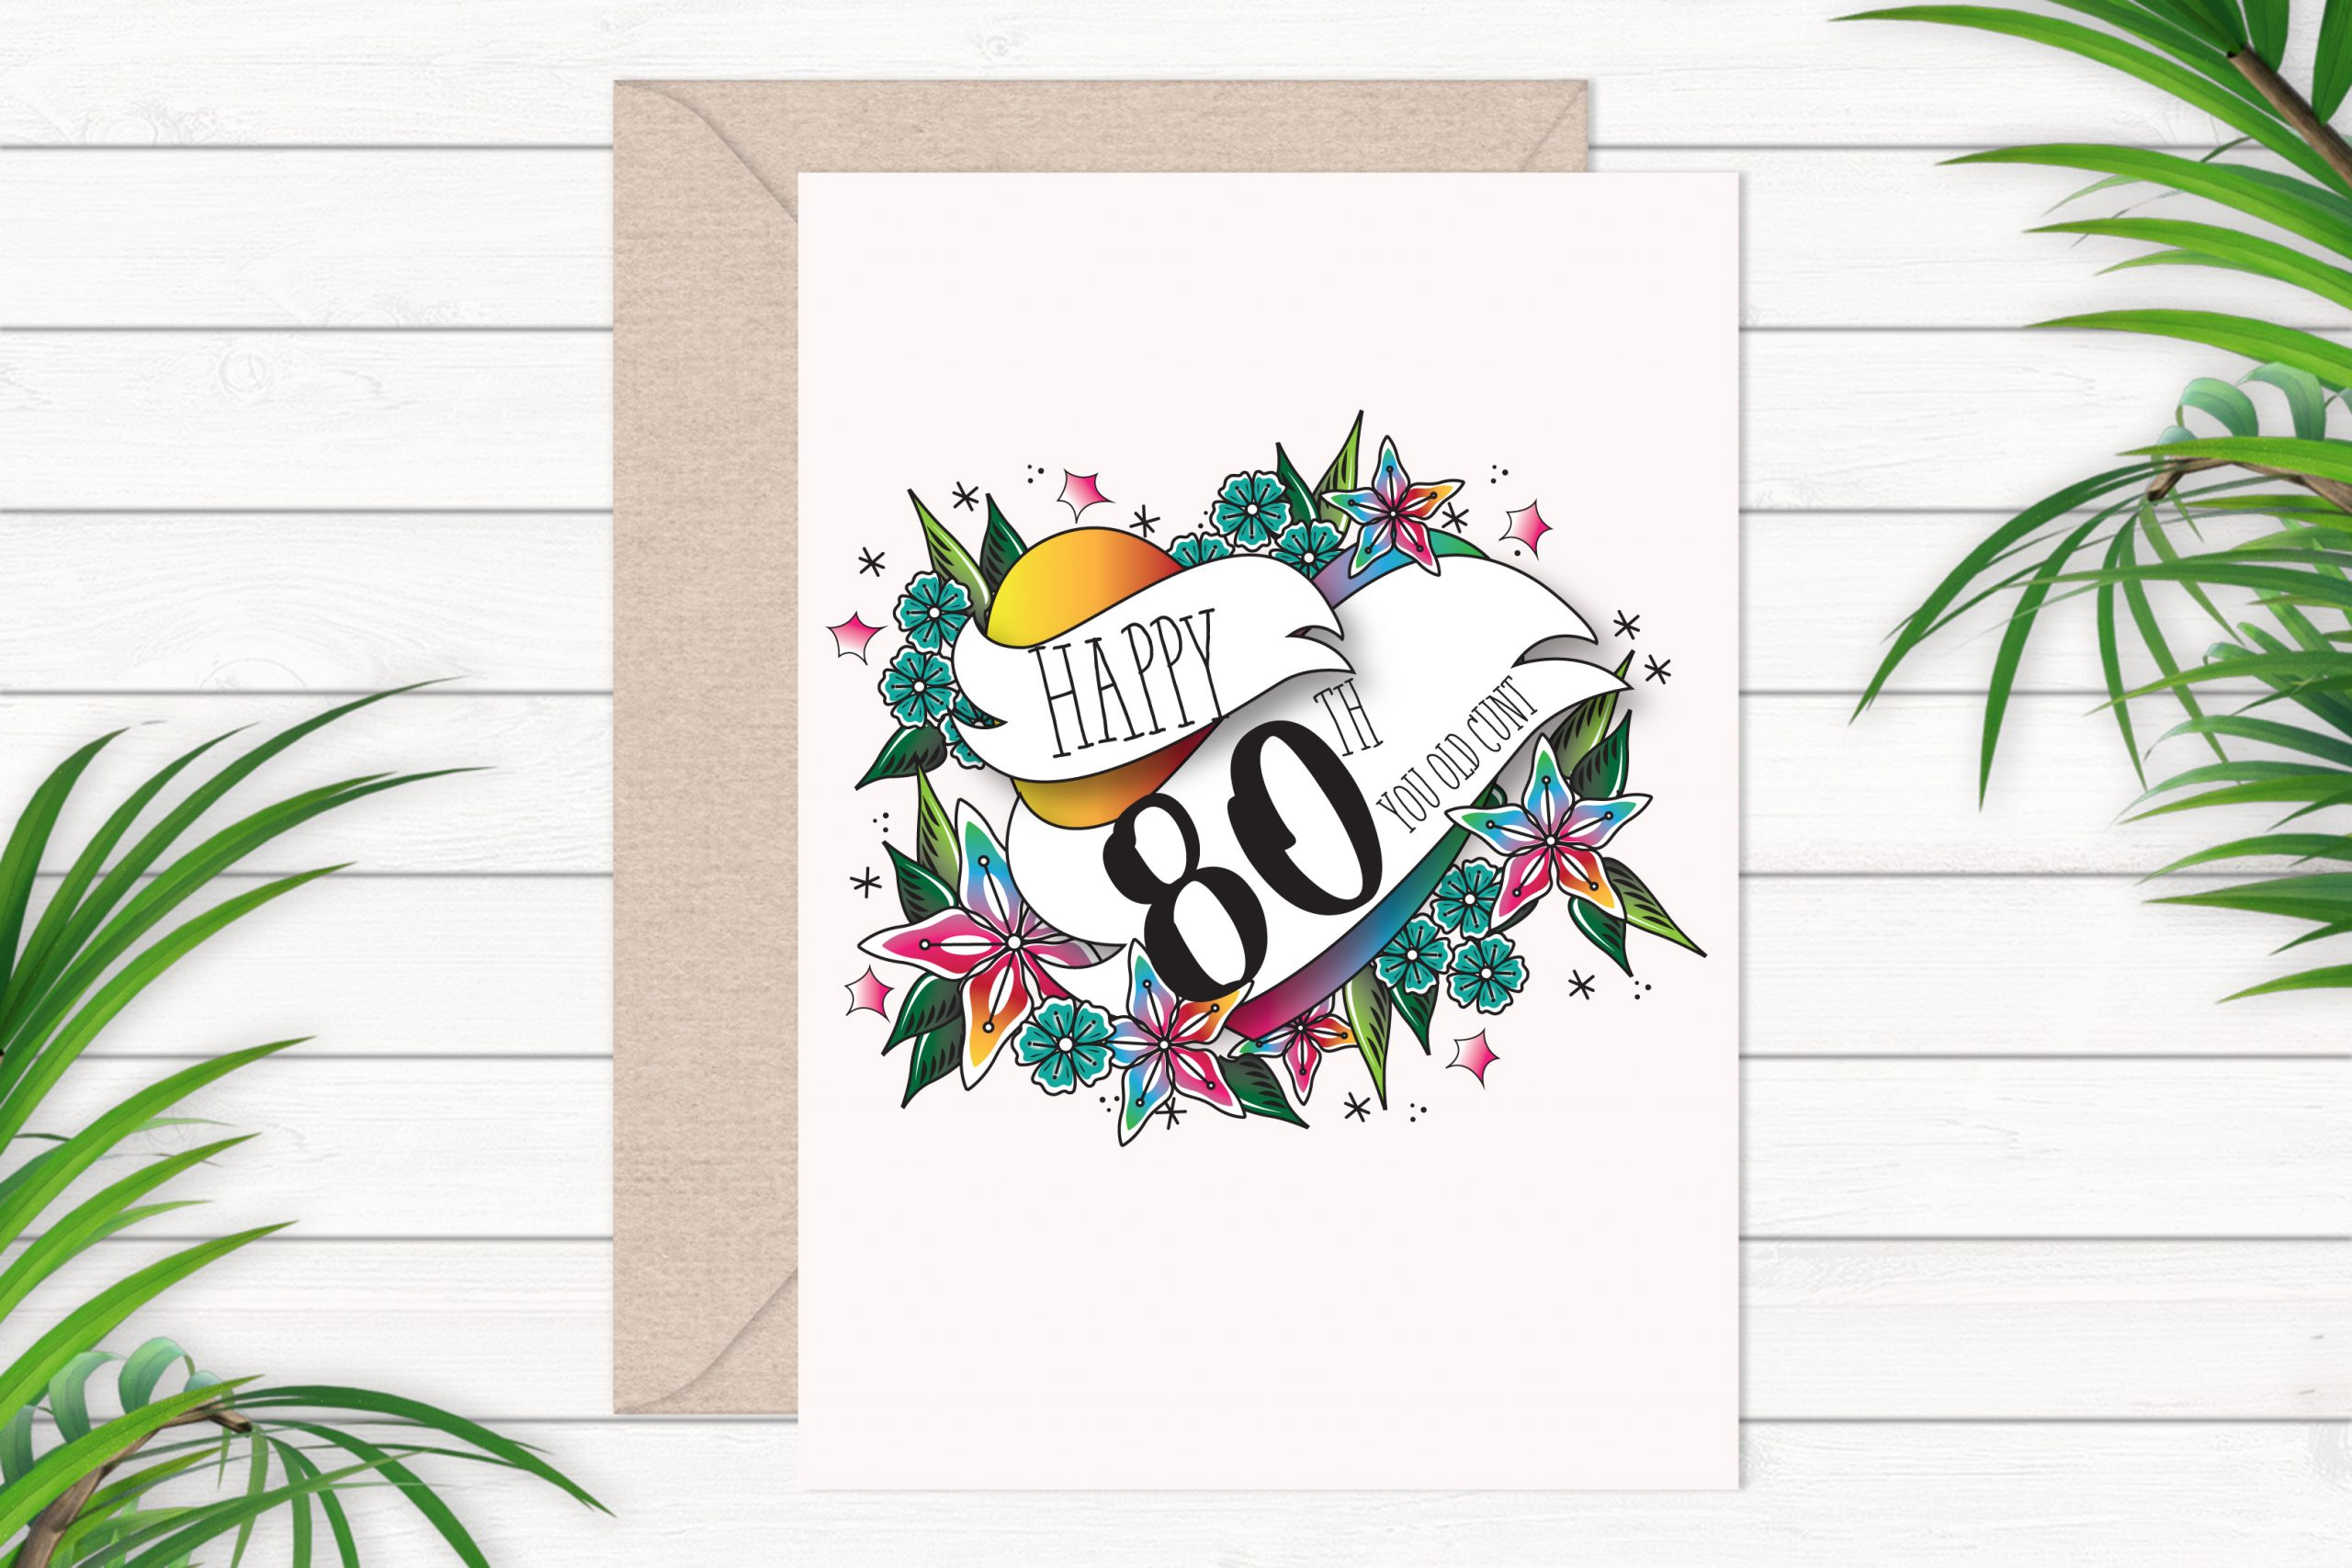 insulting-80th-birthday-card